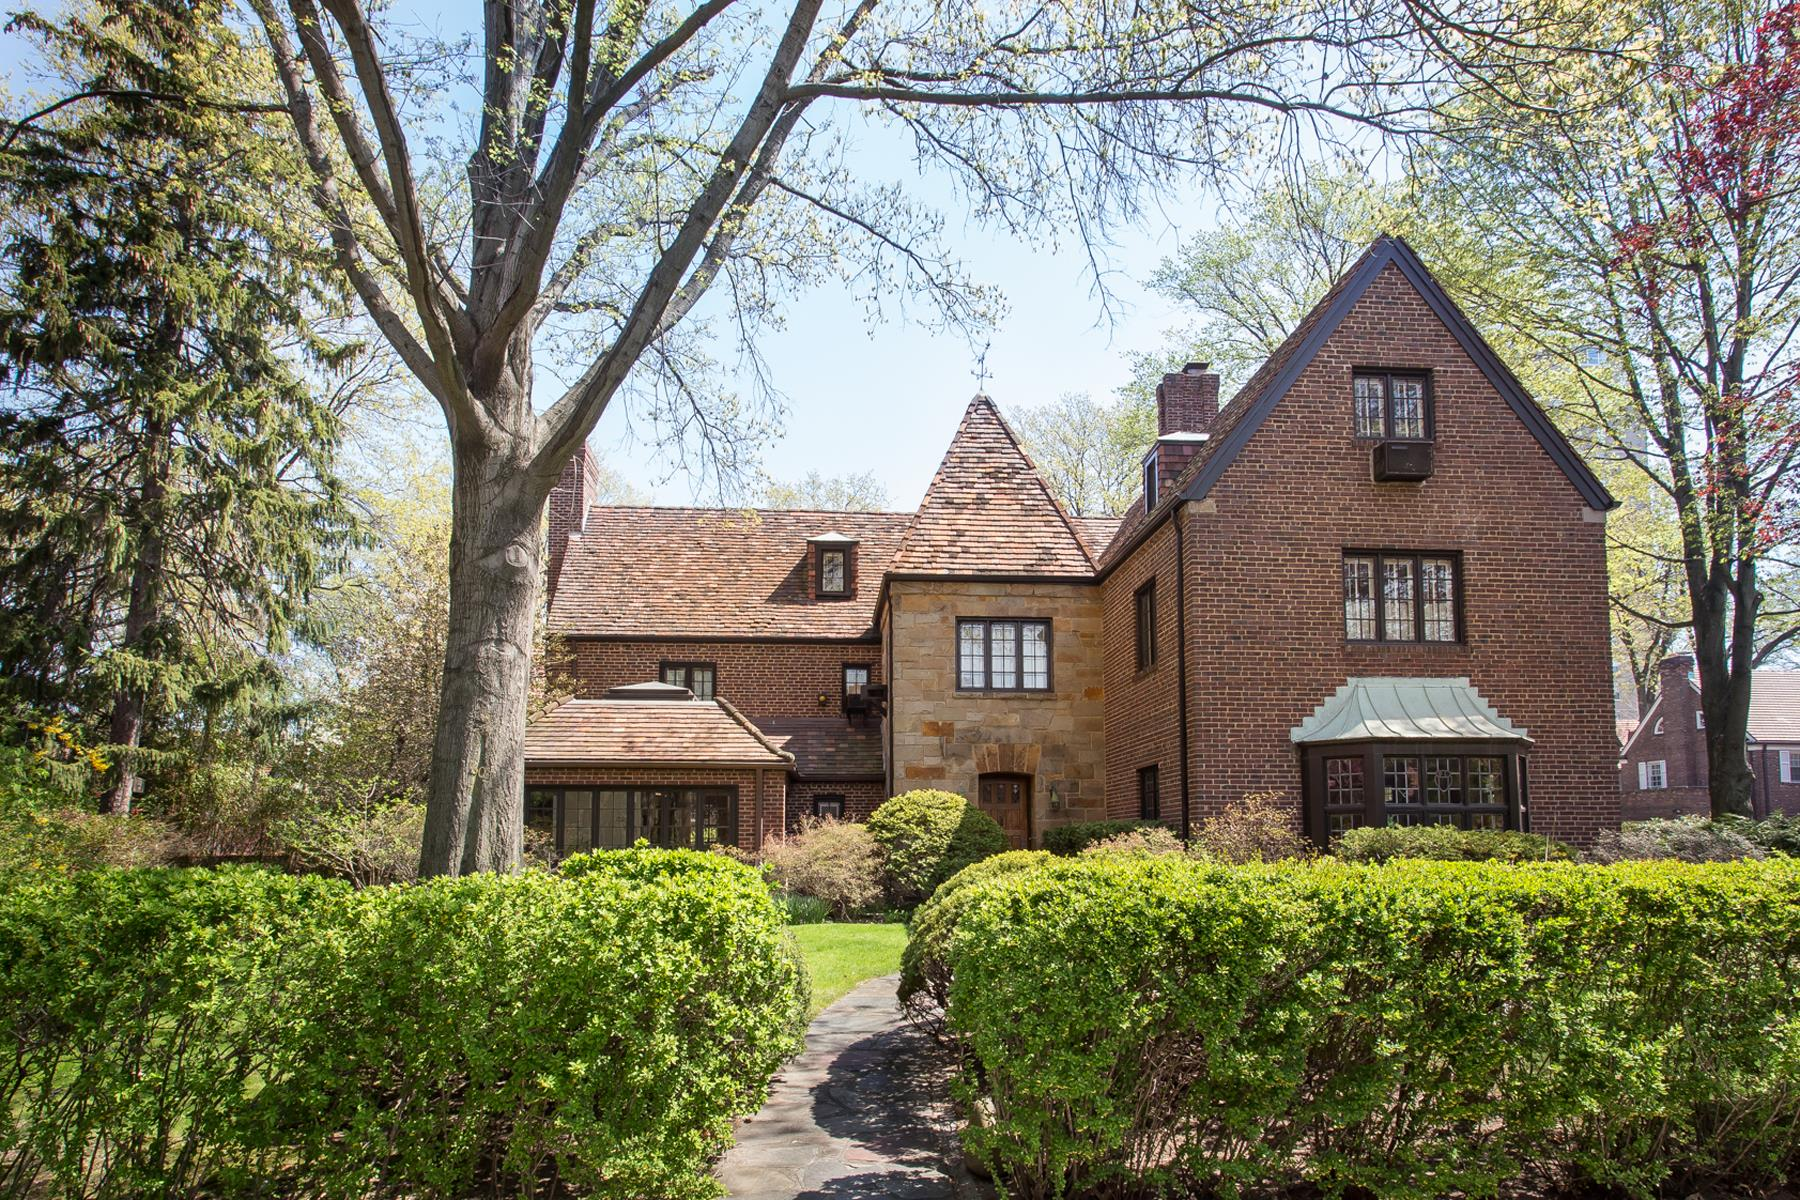 Residential for Sale at 60 DEEPDENE ROAD, FOREST HILLS GARDENS Forest Hills, New York 11375 United States